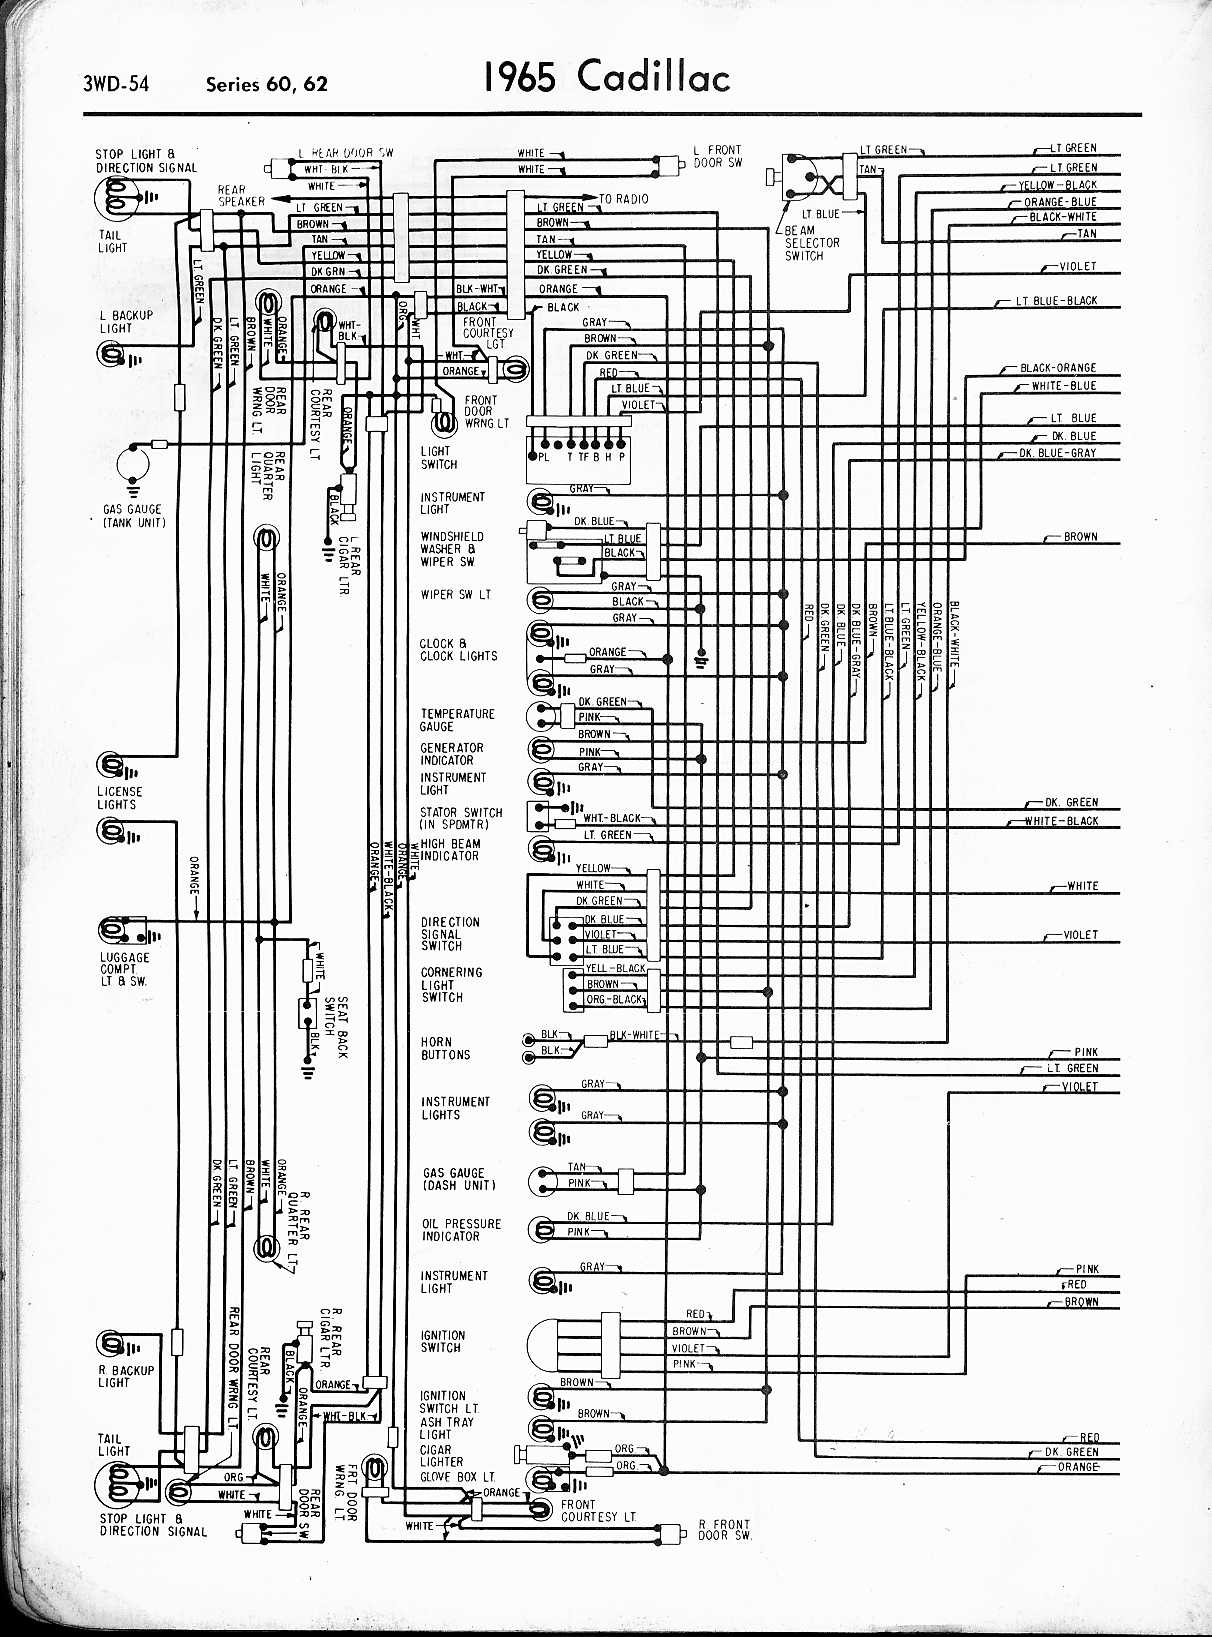 cadillac wiring diagrams 1957 1965 1979 Porsche 928 Wiring Diagram  1979 Chevy Camaro Wiring Diagram 1979 Jeep J10 Wiring Diagram 1979 Ford Ranchero Wiring Diagram